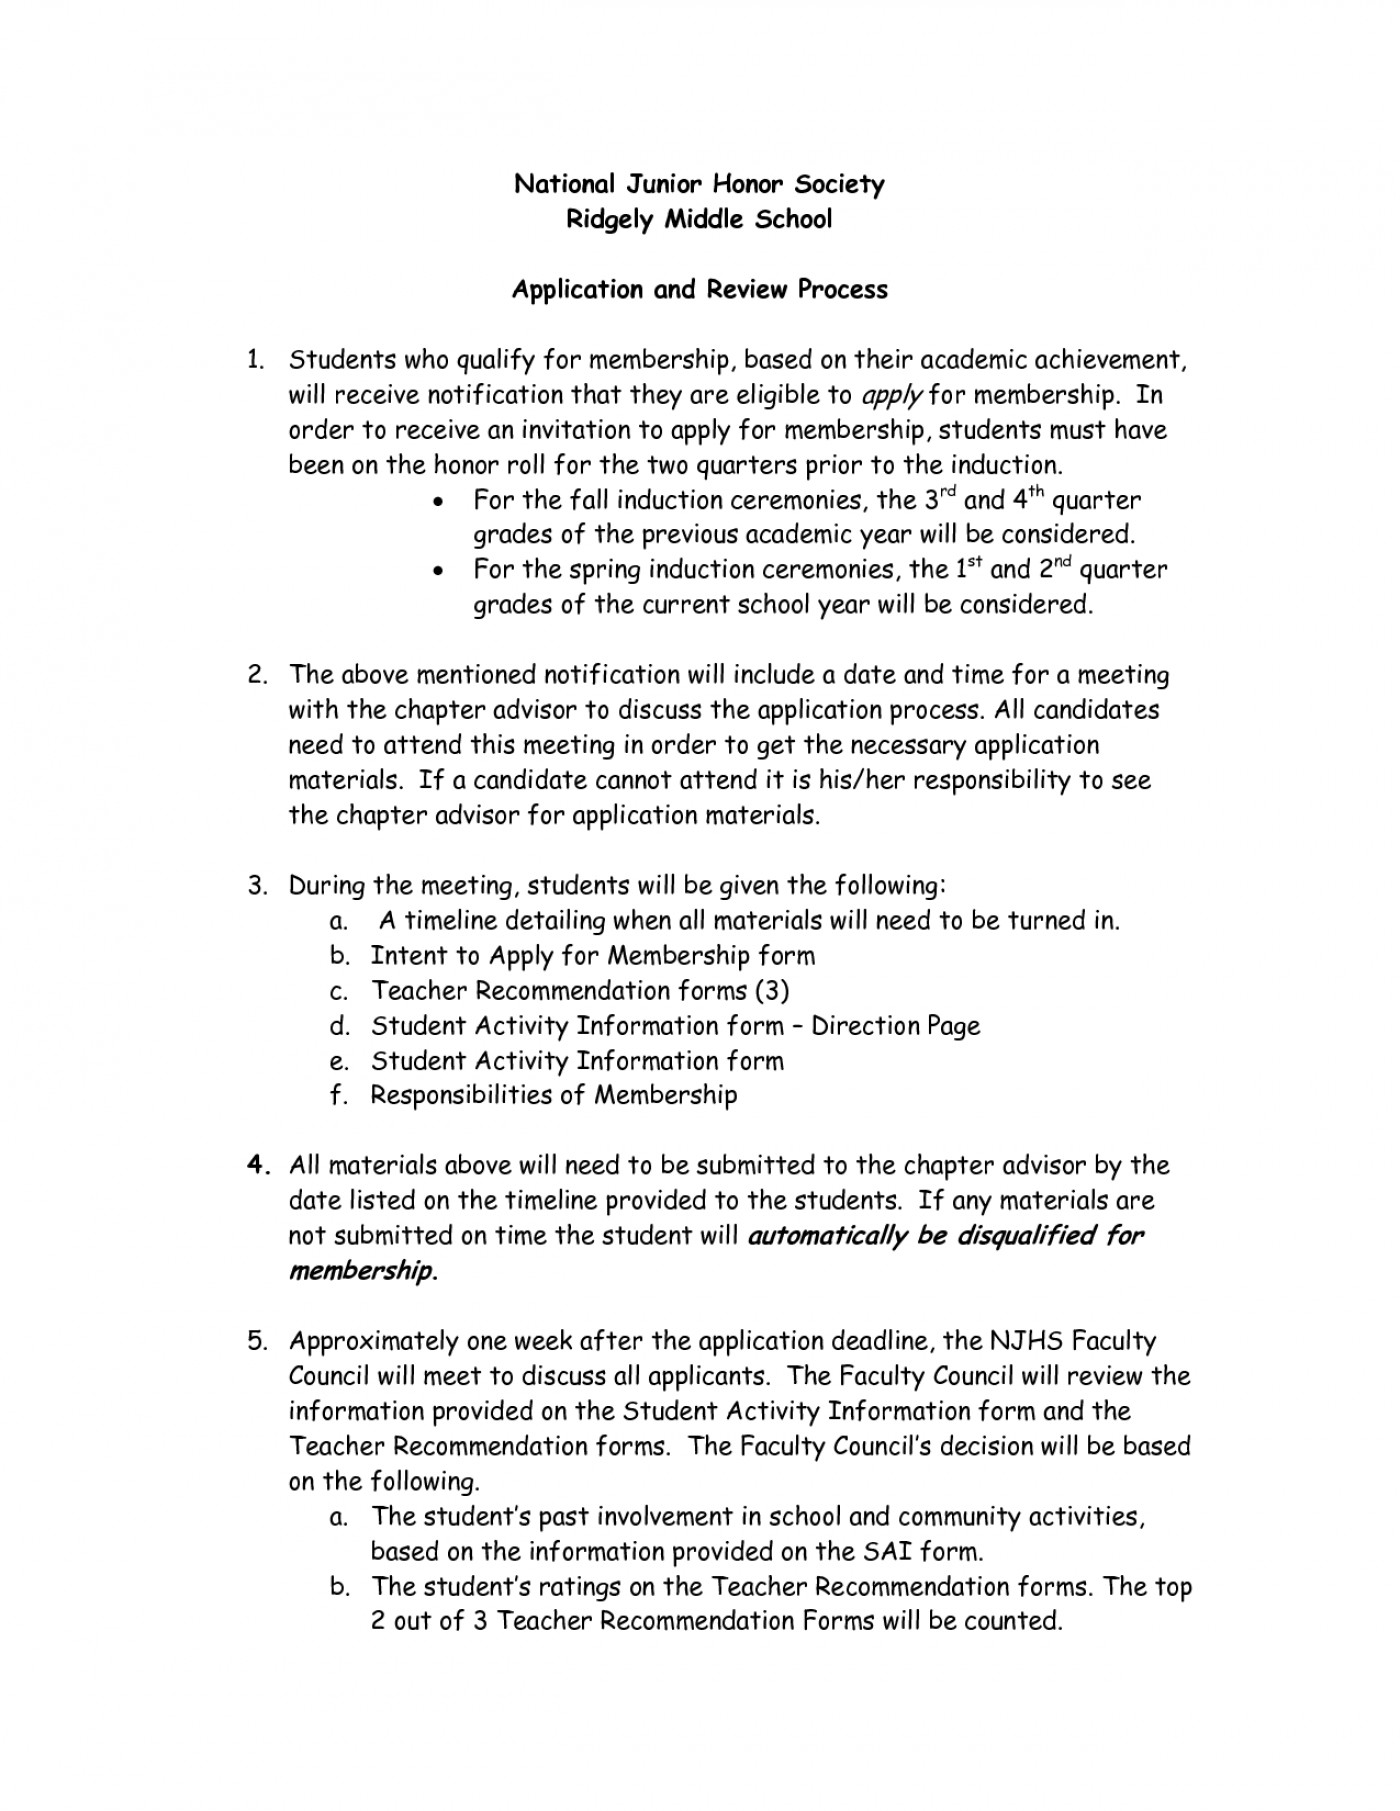 007 Essay Example Njhs Conclusion National Honors Society Examples Of Honor Junior Unique 1400